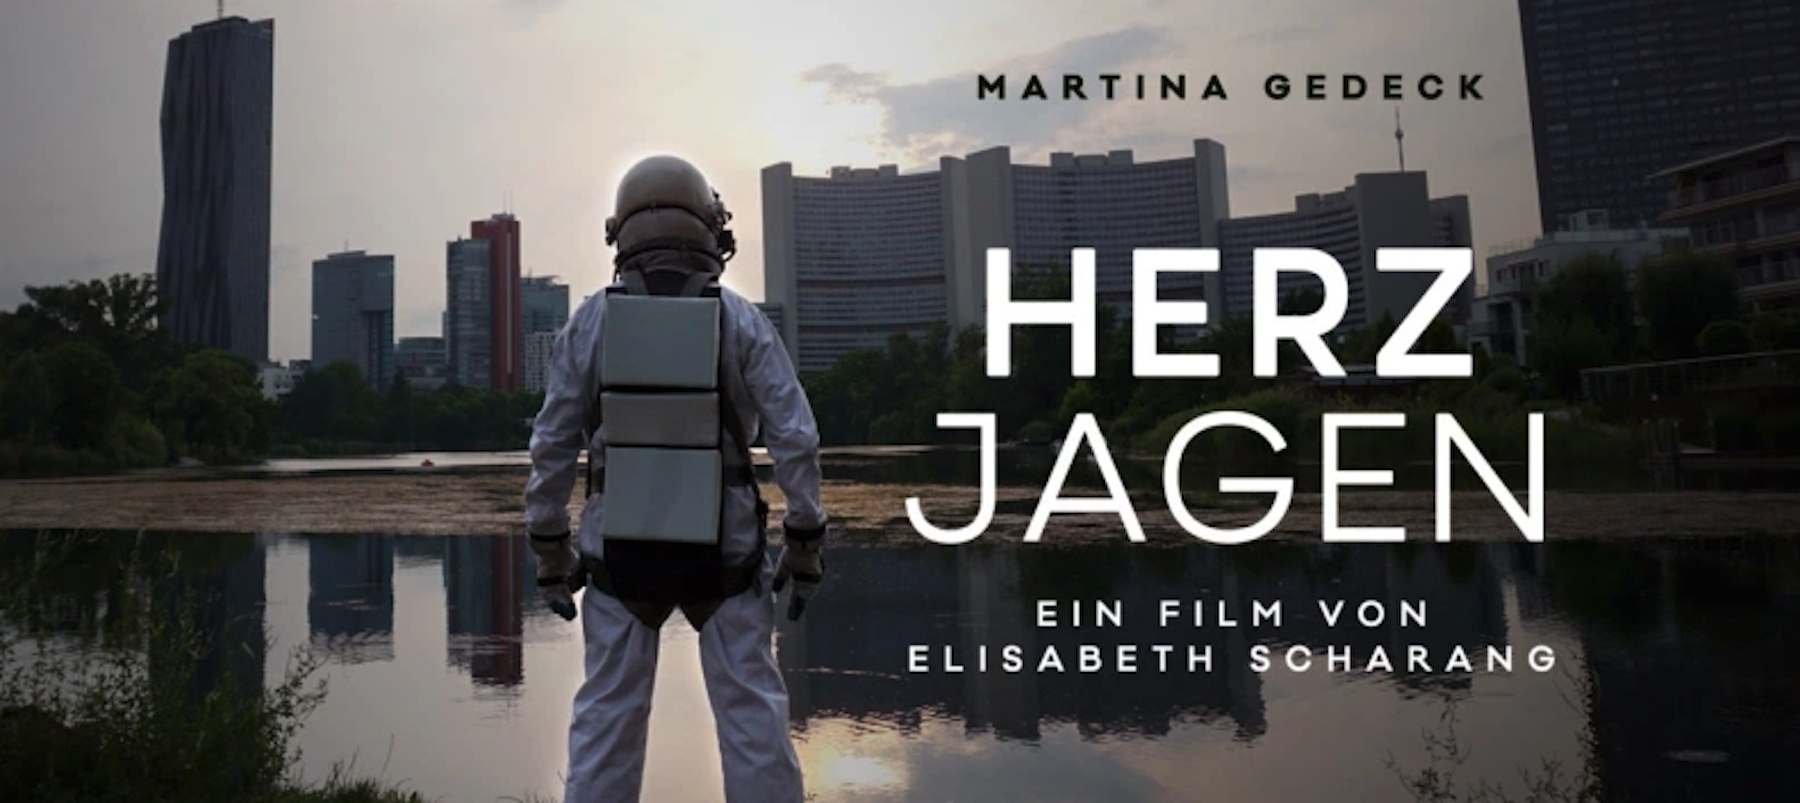 Herzjagen - moonrocketfilms tv